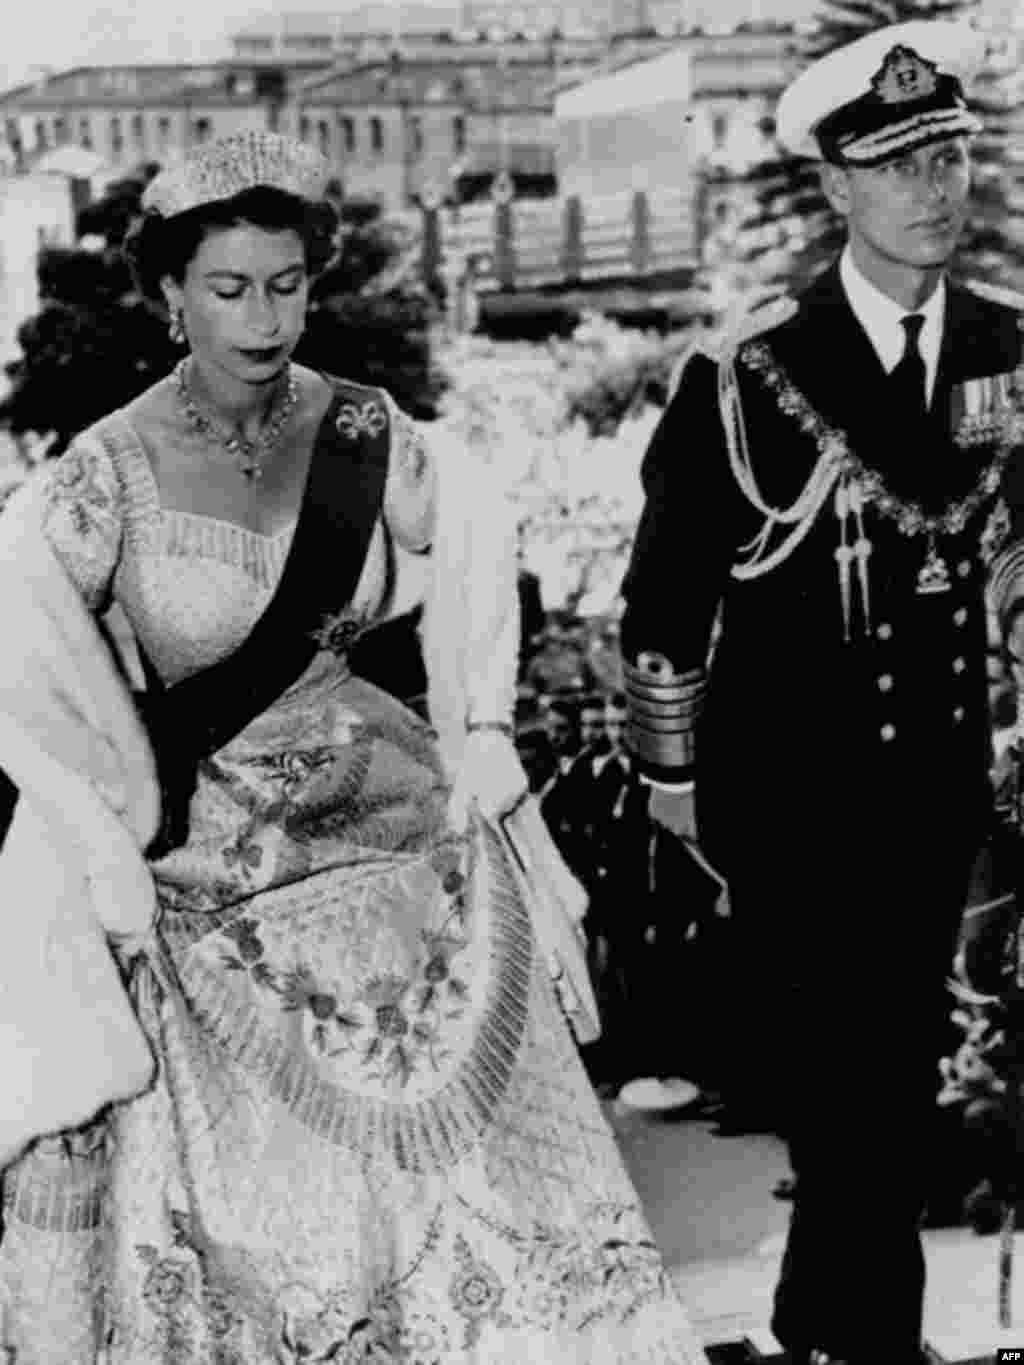 Queen Elizabeth and the Duke of Edinburgh enter Parliament House, Wellington, New Zealand, January 12, 1954. The Queen wears her coronation gown, the order of the garter, and a diamond tiara. (AP)